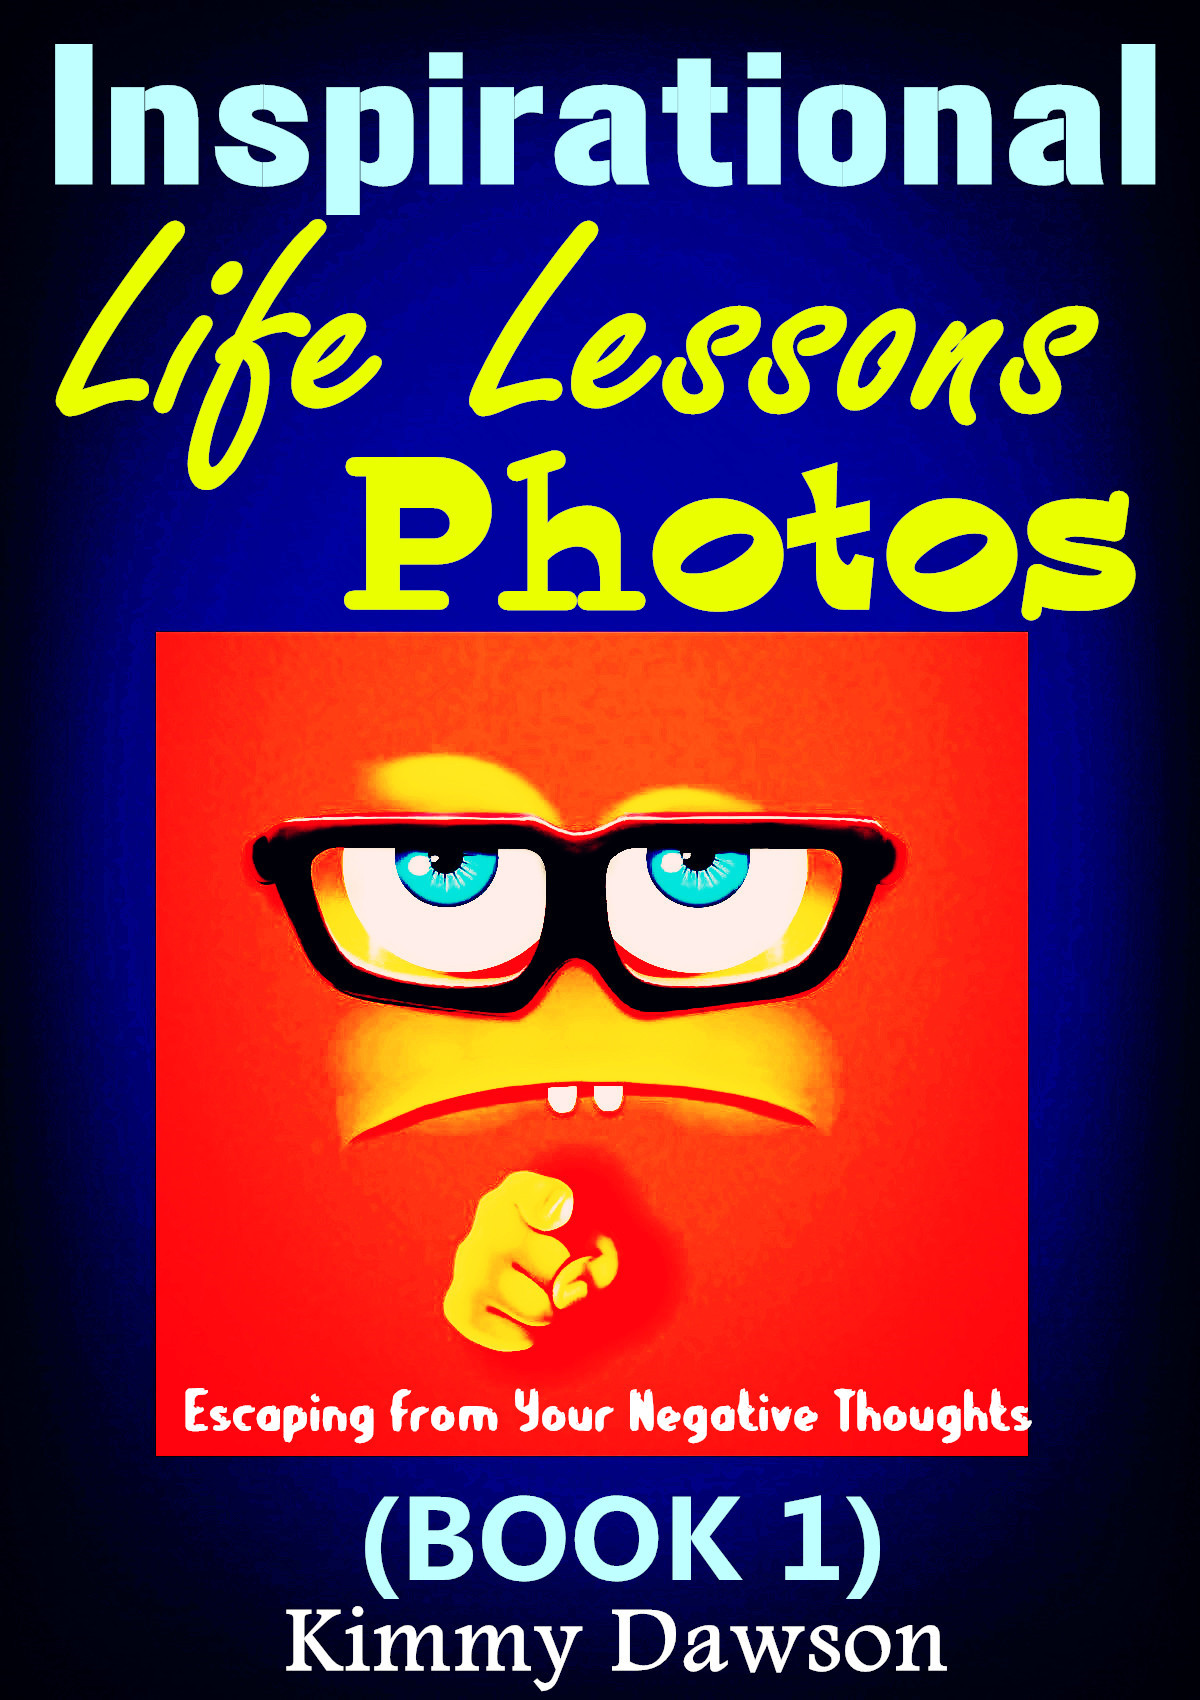 Inspirational Life Lessons Photos (BOOK 1)  by  Kimmy Dawson